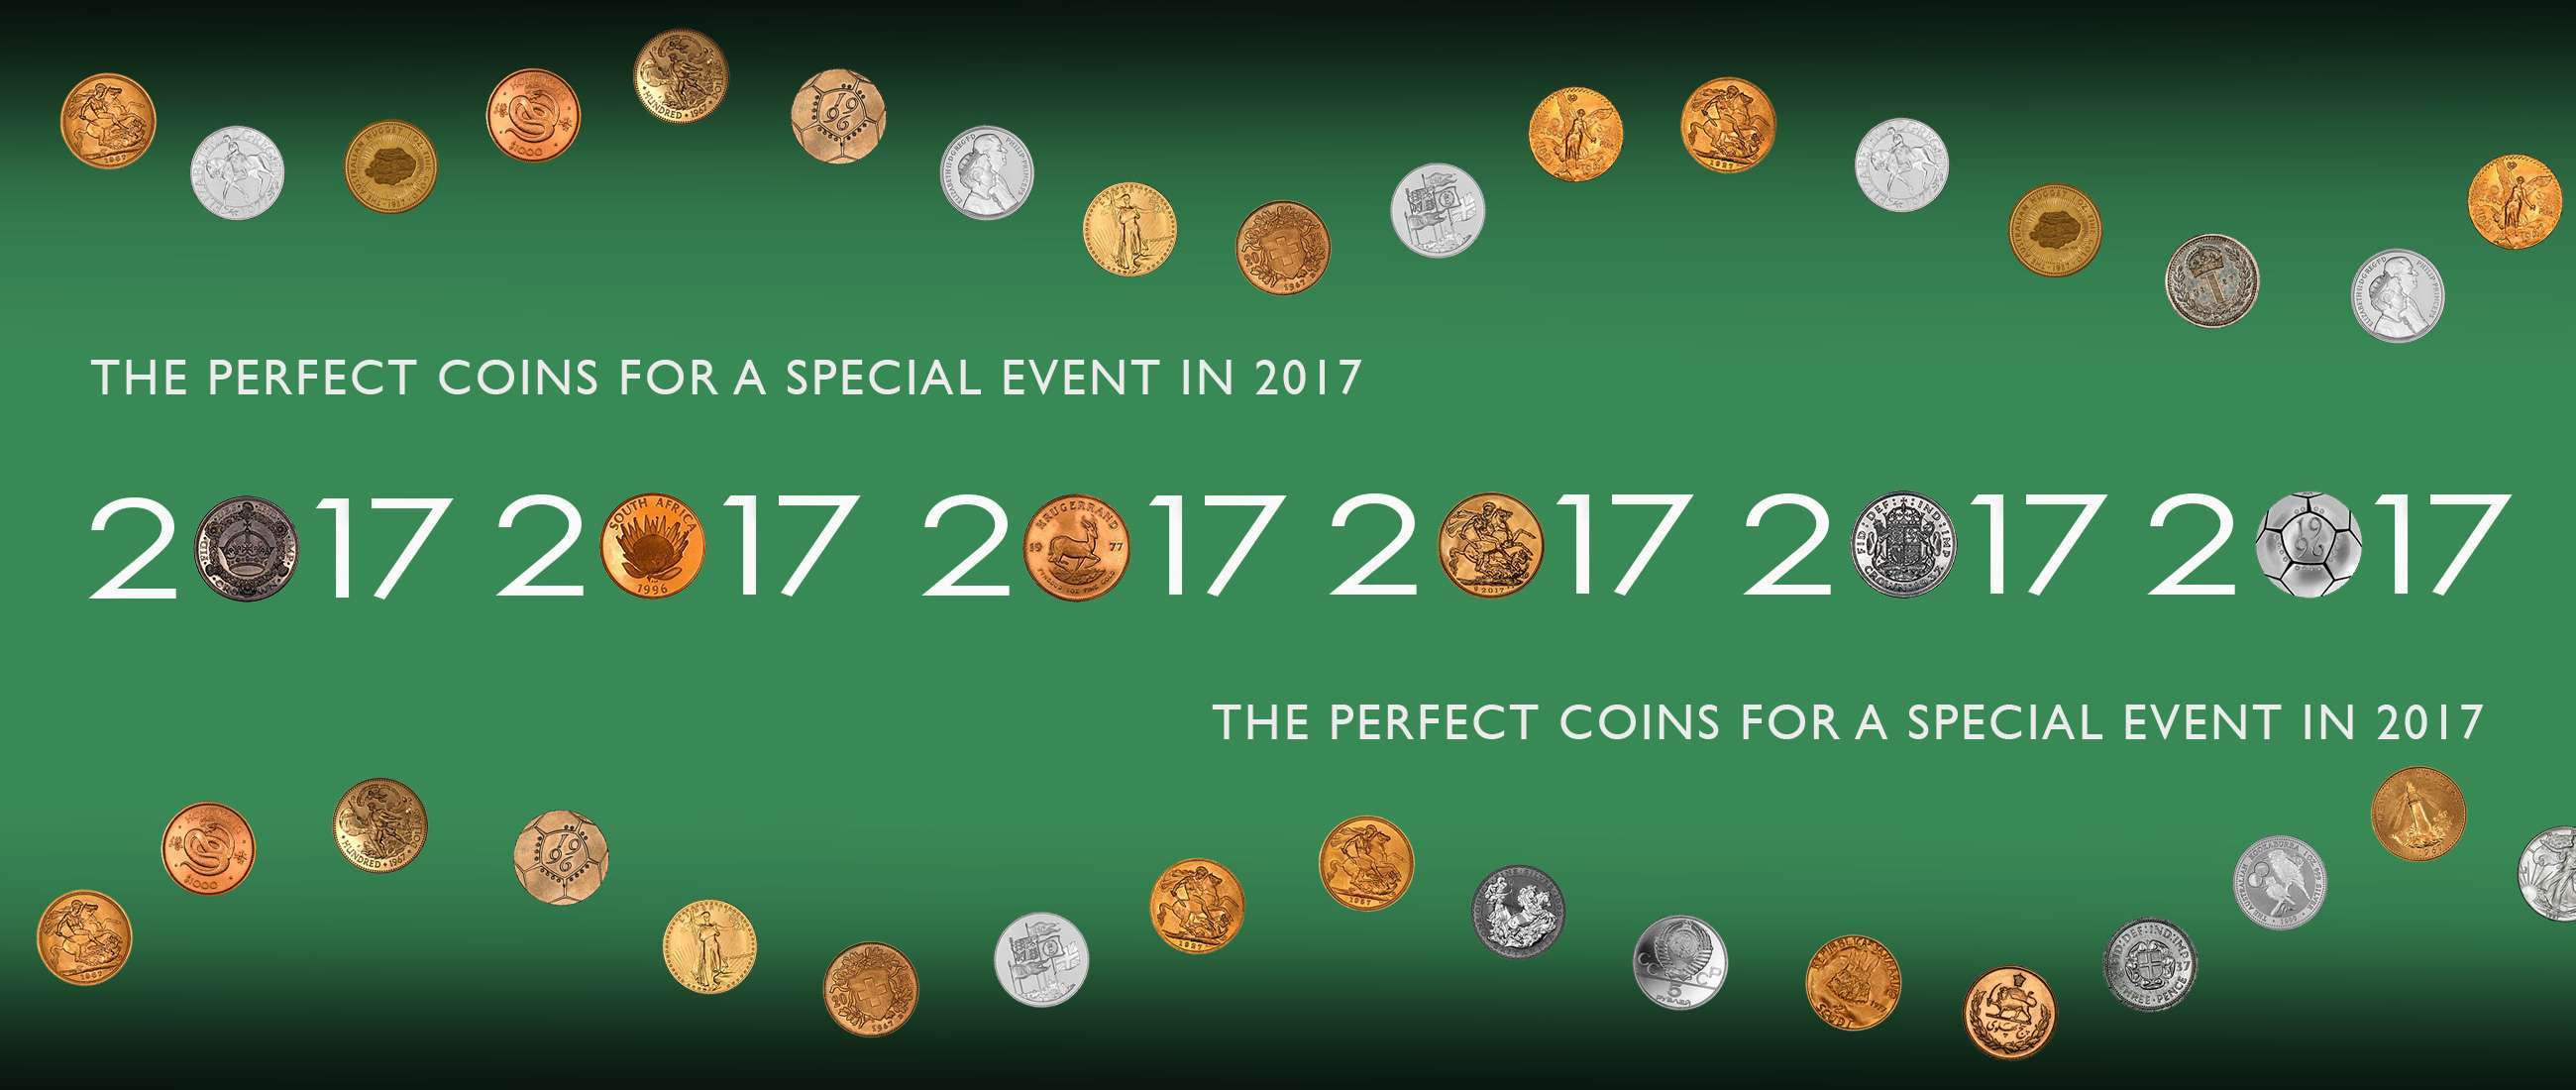 The Perfect Coin for Special Events in 2017 159